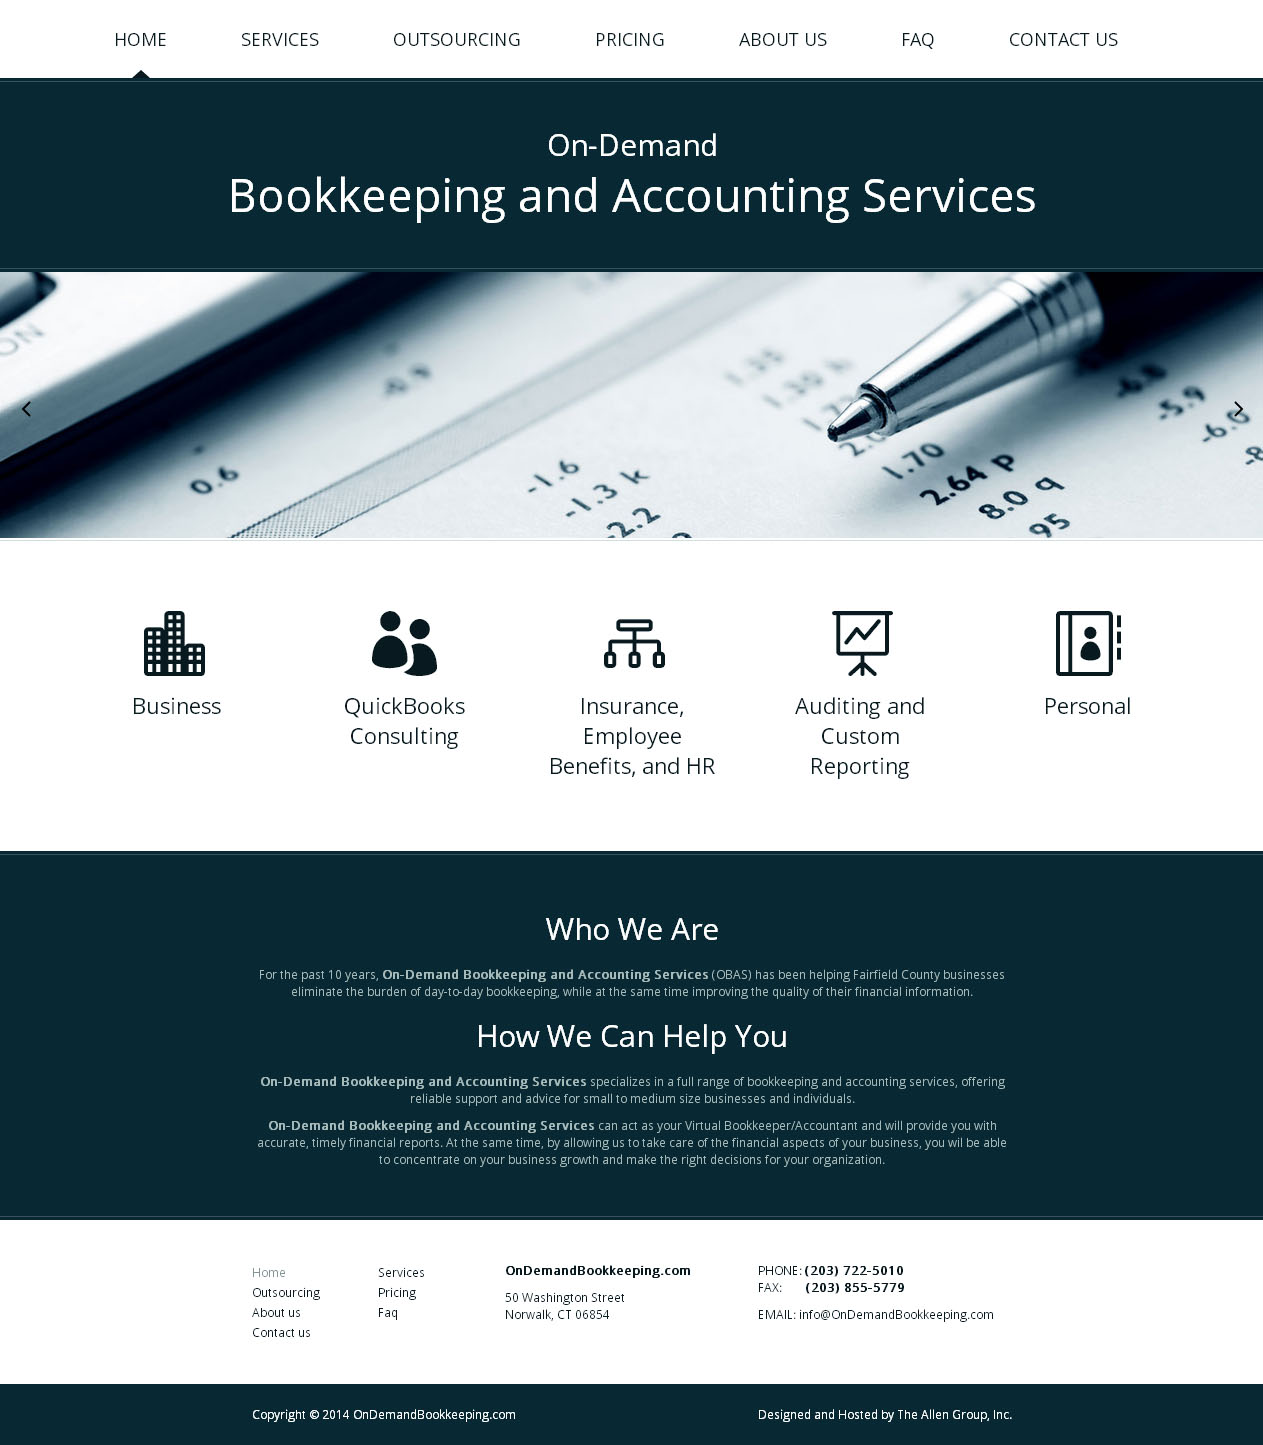 On-Demand Bookkeeping and Accounting Services